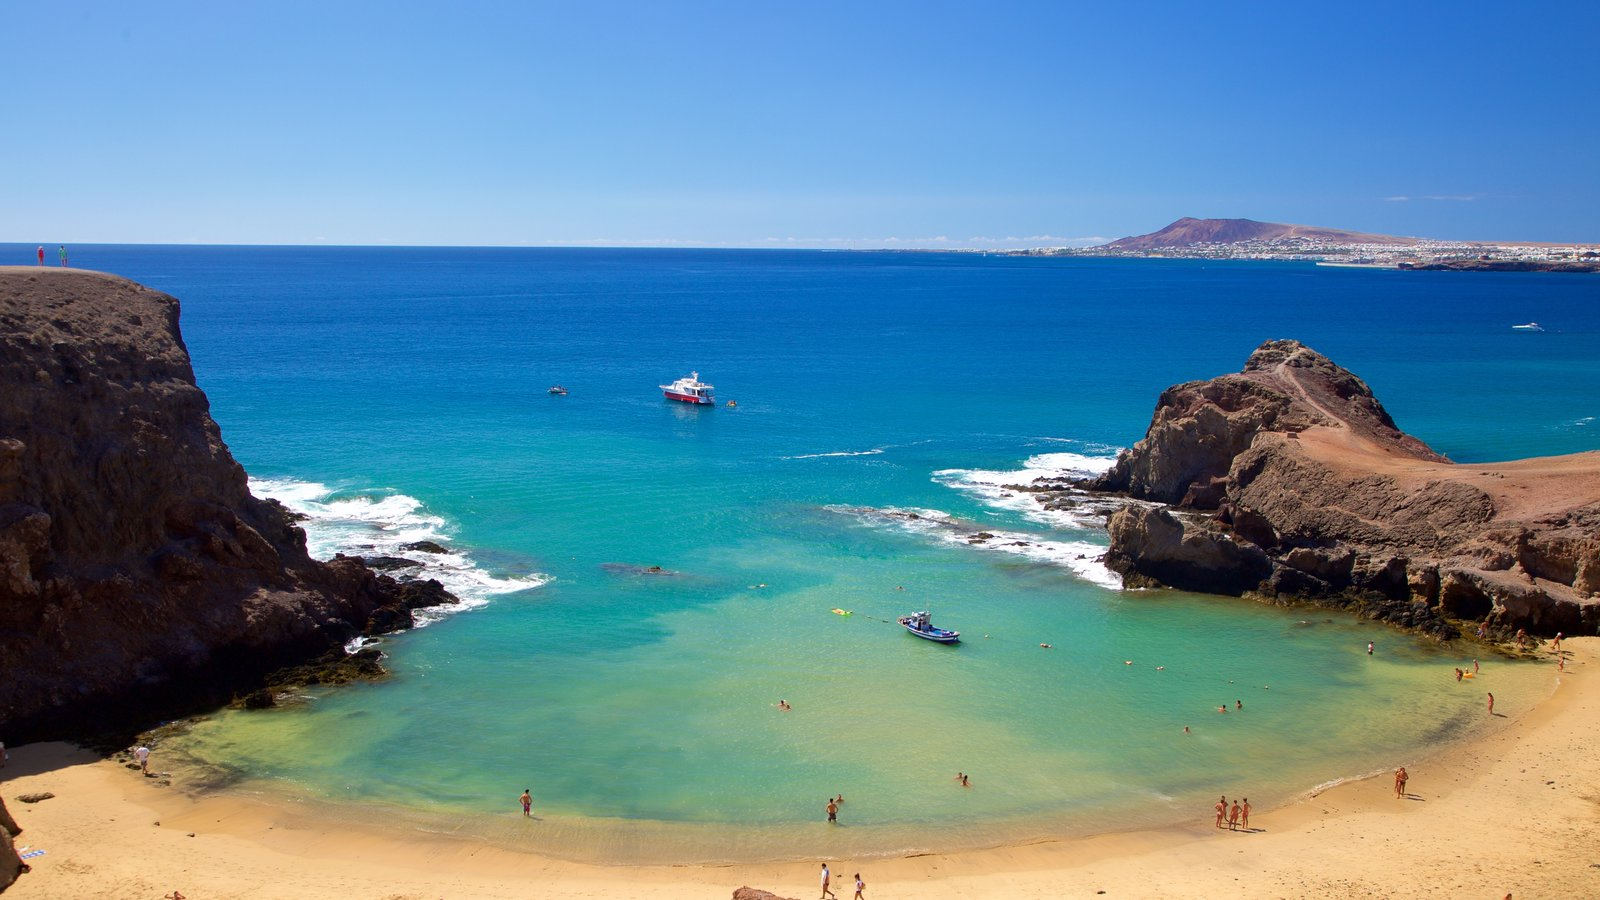 Papagayo Beach showing rugged coastline, general coastal views and a sandy beach